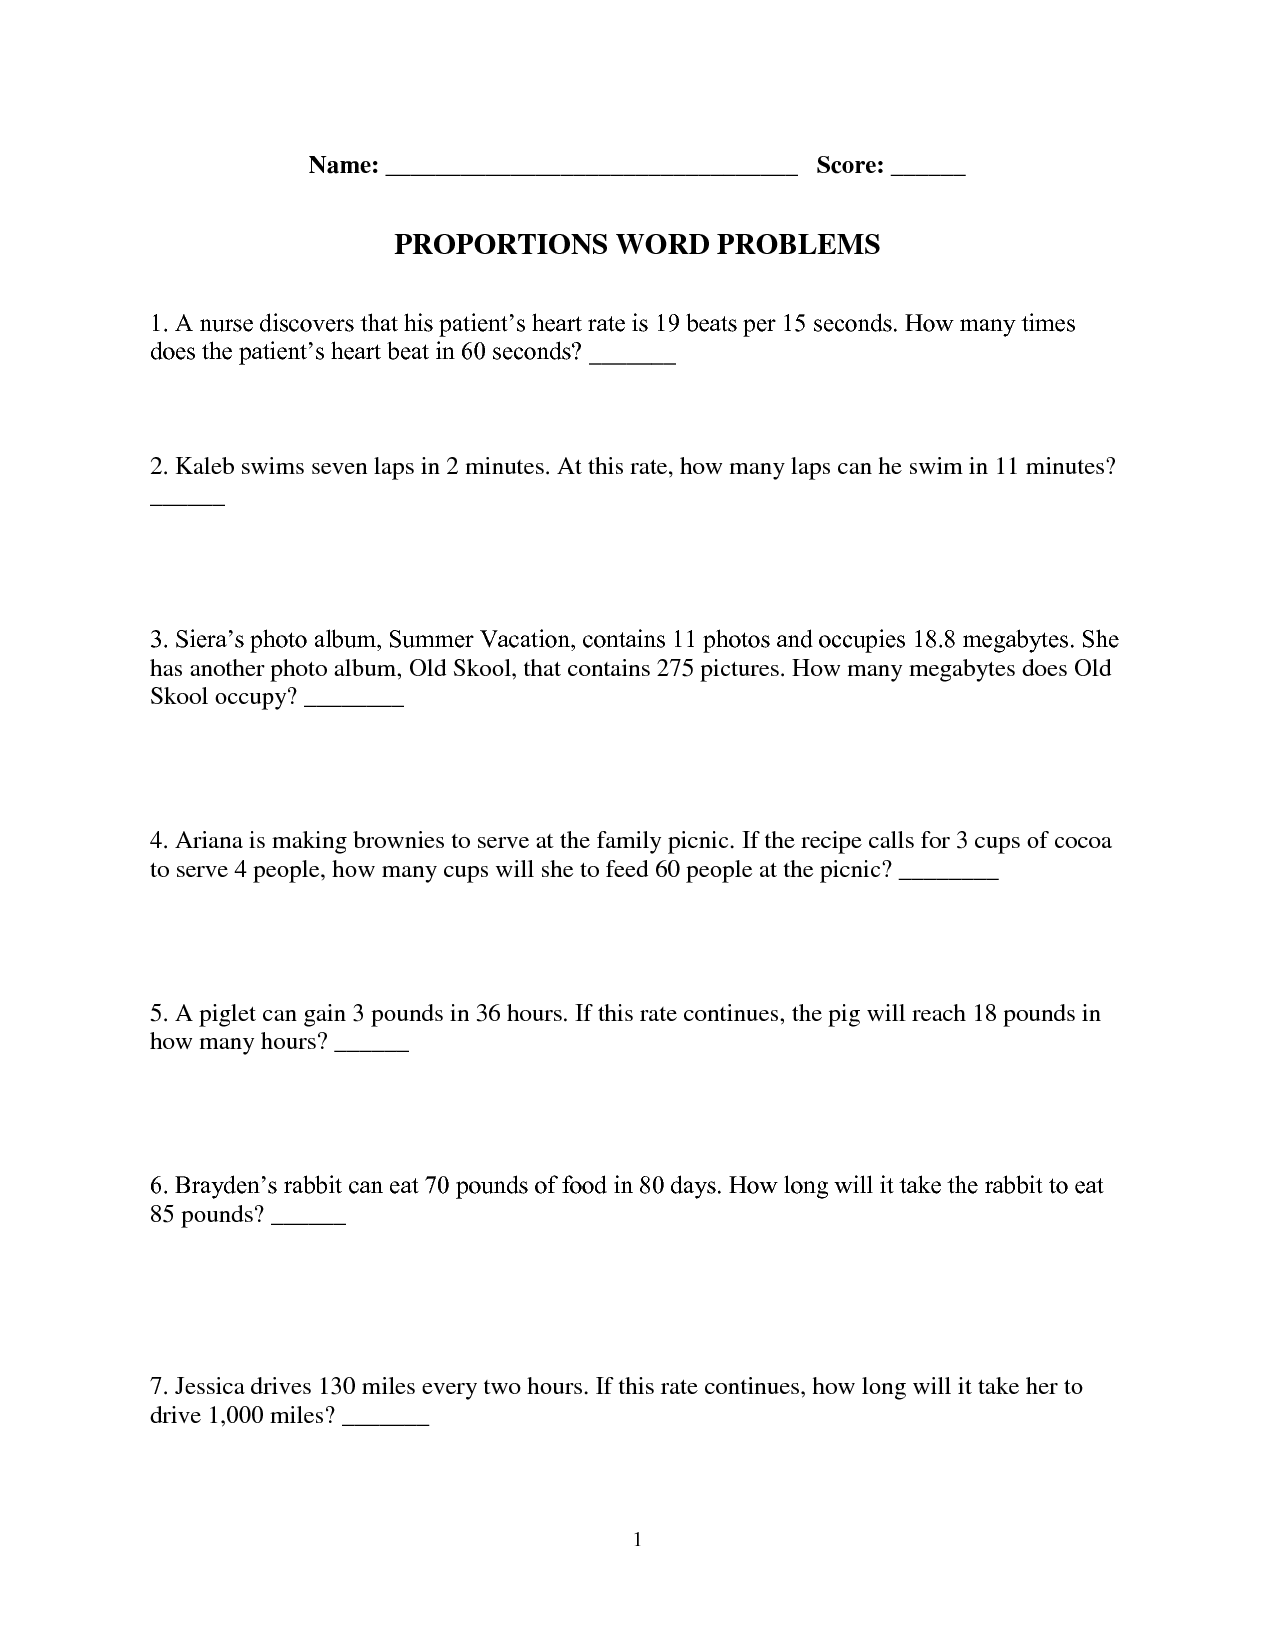 10 Best Images Of Rate Problems Worksheet